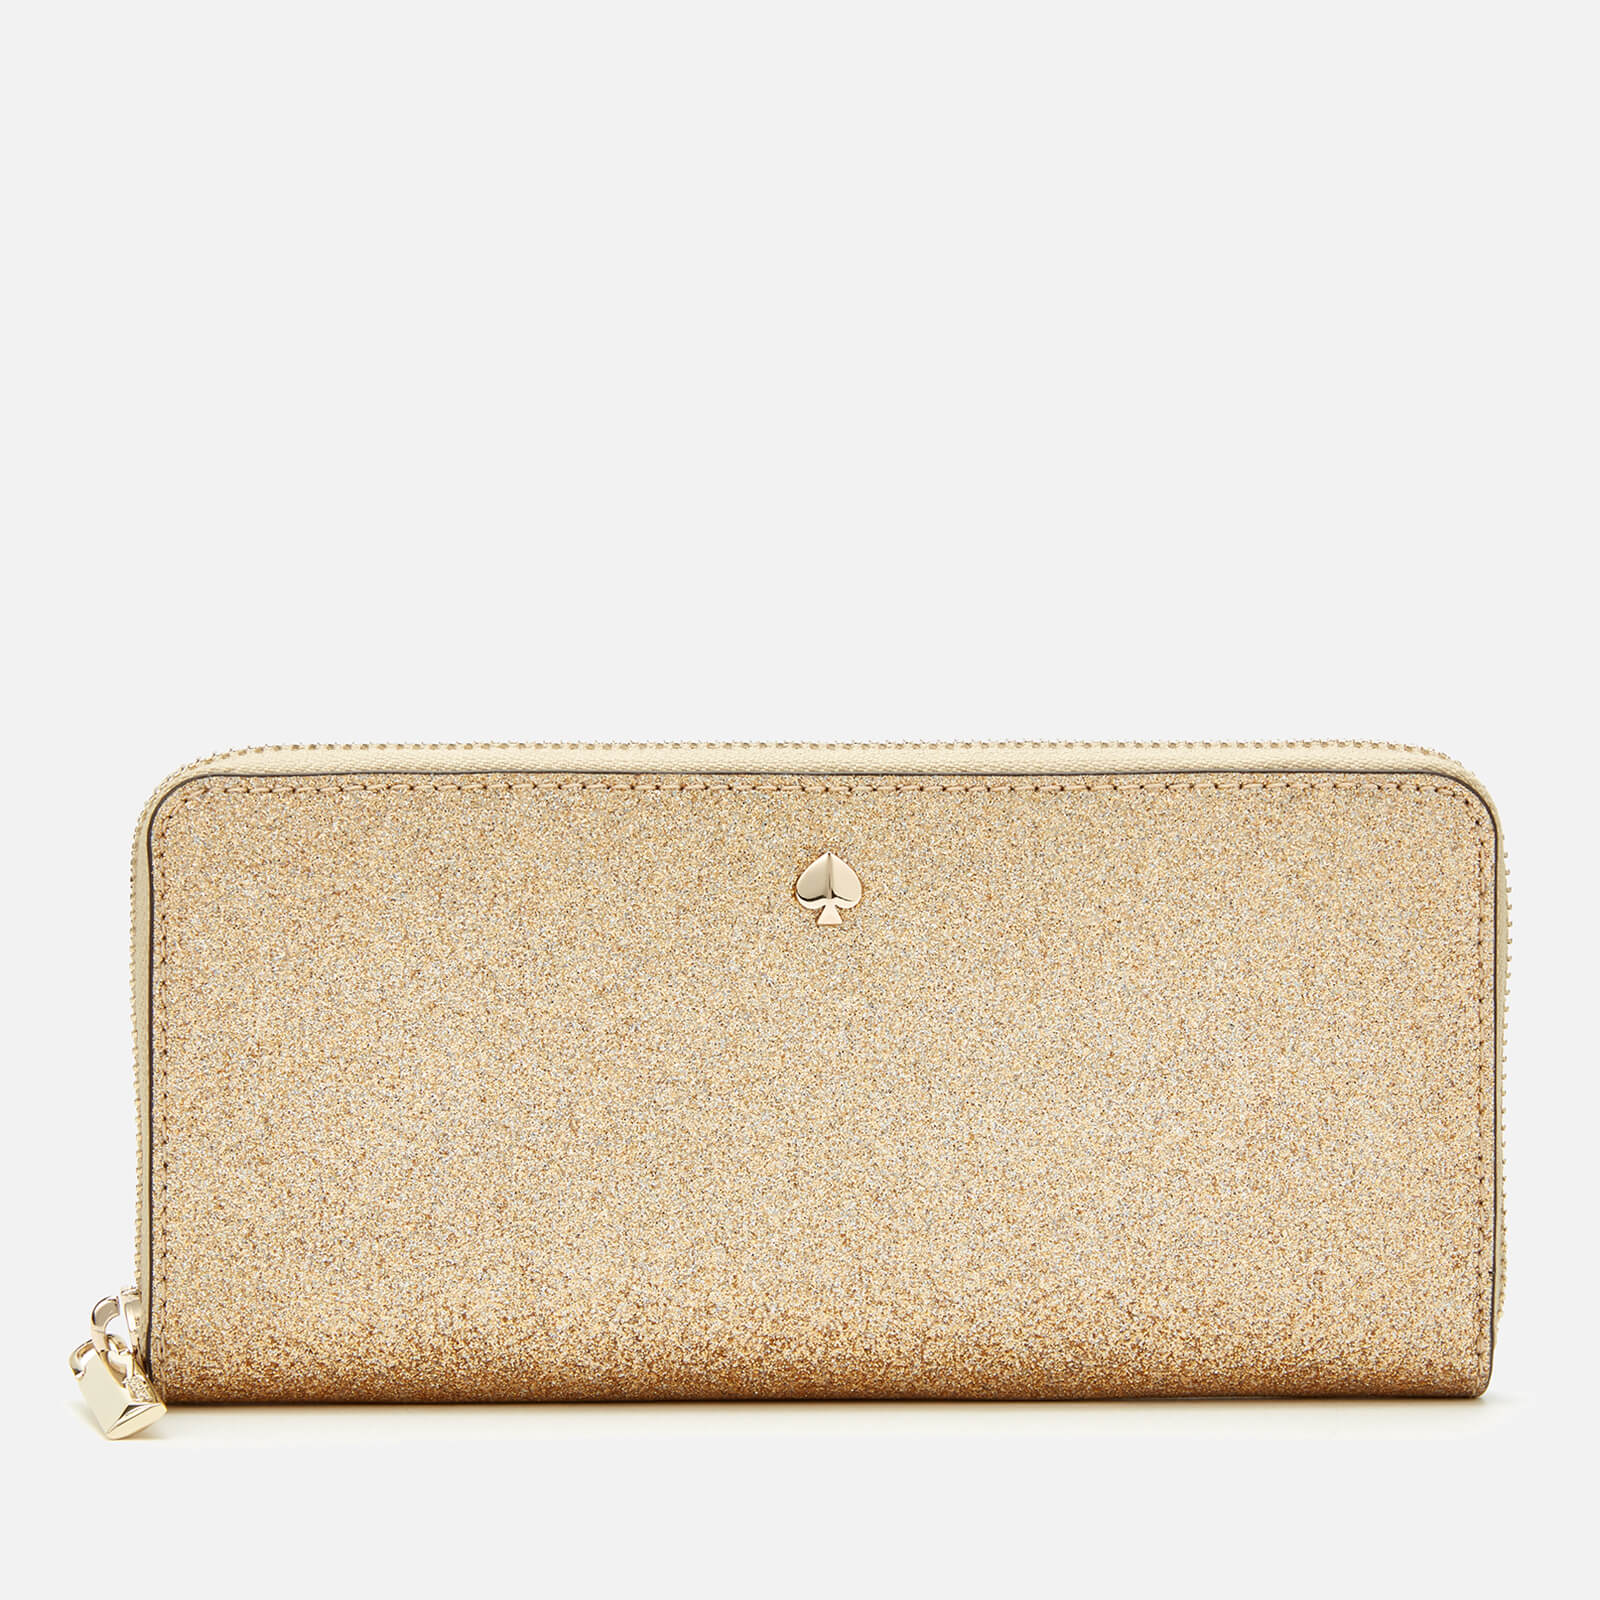 Kate Spade New York Women's Burgess Court Slim Continental Wallet - Pale Gold 原價150英鎊 優惠價75